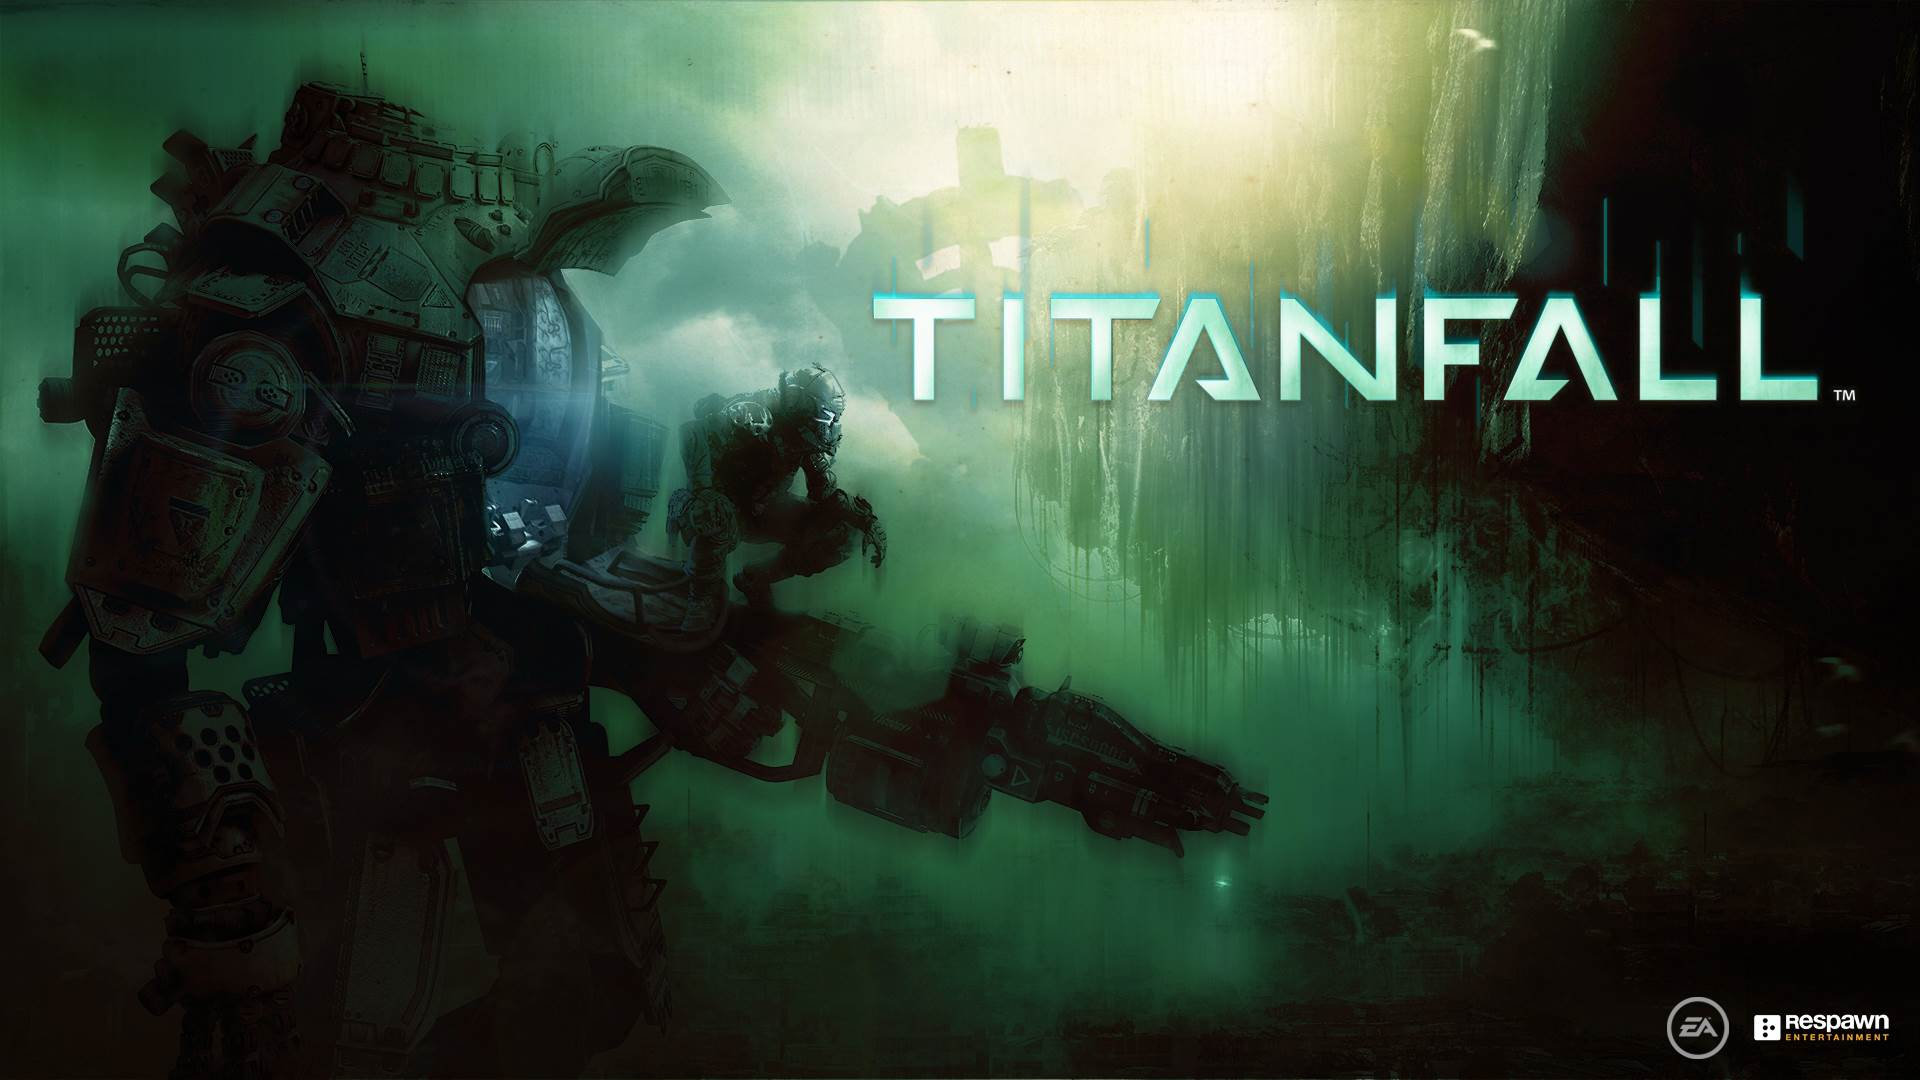 titanfall hd wallpaper